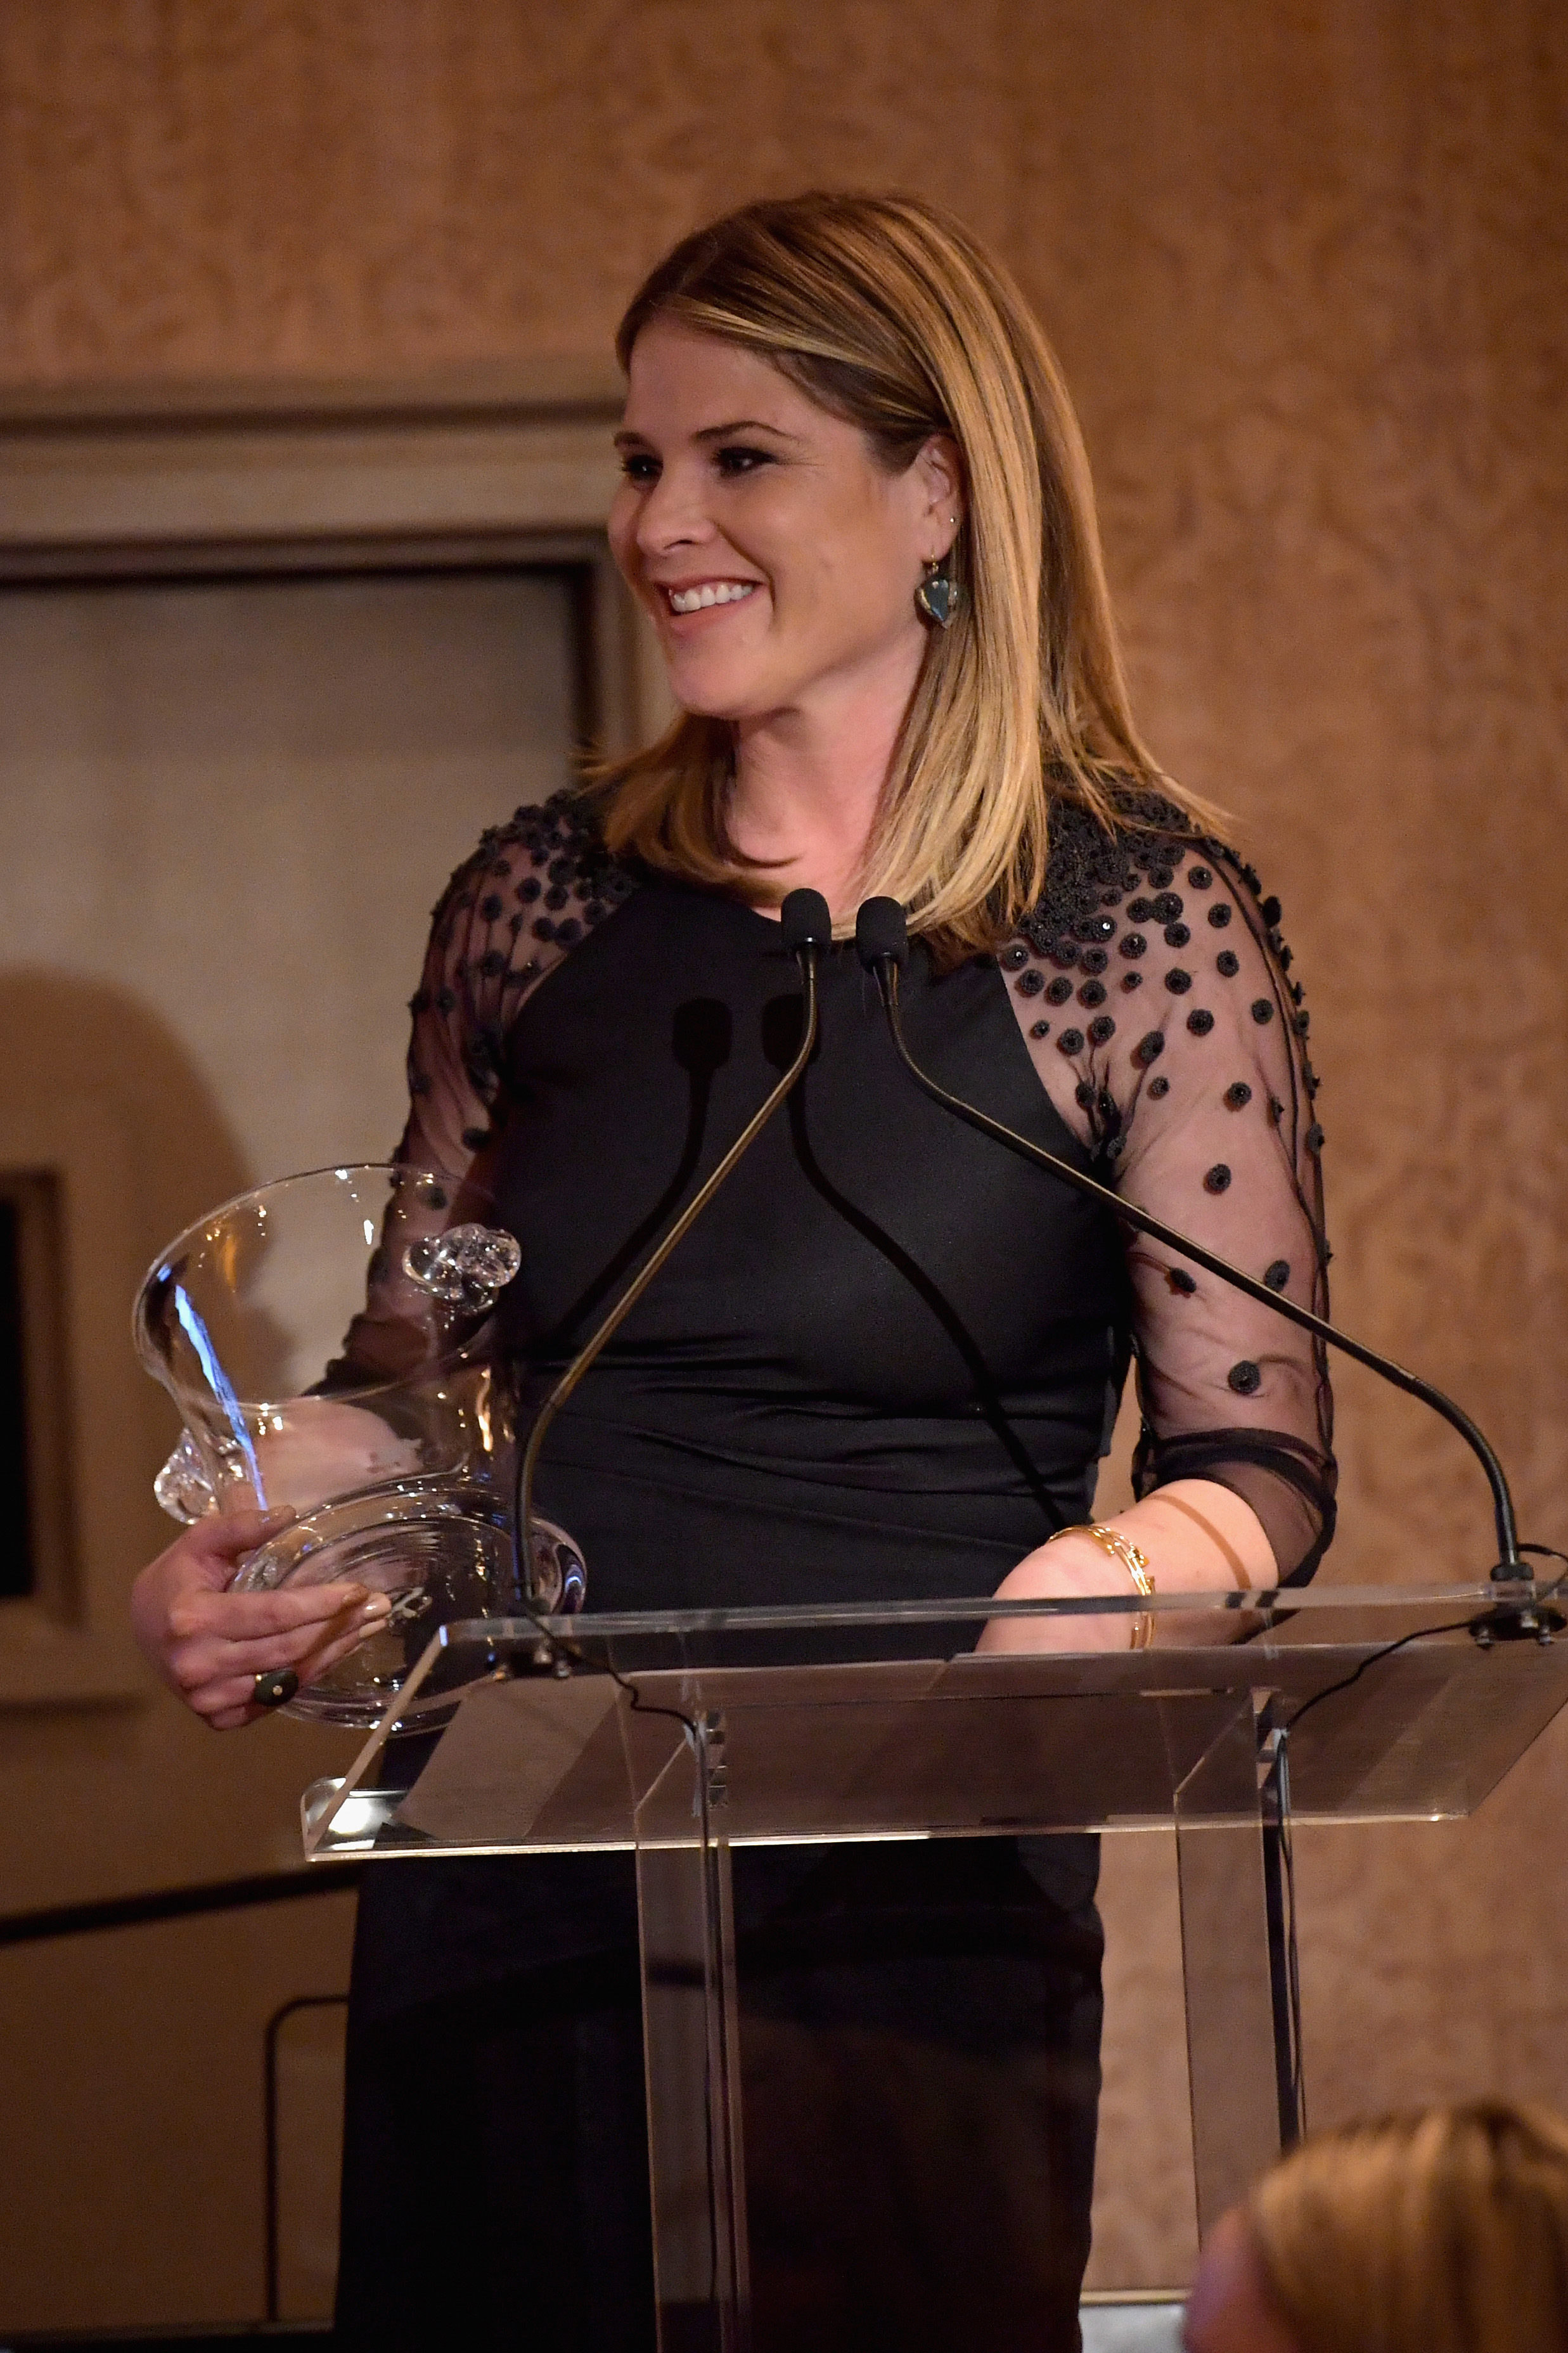 GREENWICH, CT - JUNE 01:  Jenna Bush Hager speaks on stage during the Changemaker Honoree Gala during the Greenwich International Film Festival on June 1, 2017 in Greenwich, Connecticut.  (Photo by Ben Gabbe/Getty Images for Greenwich International Film Festival)